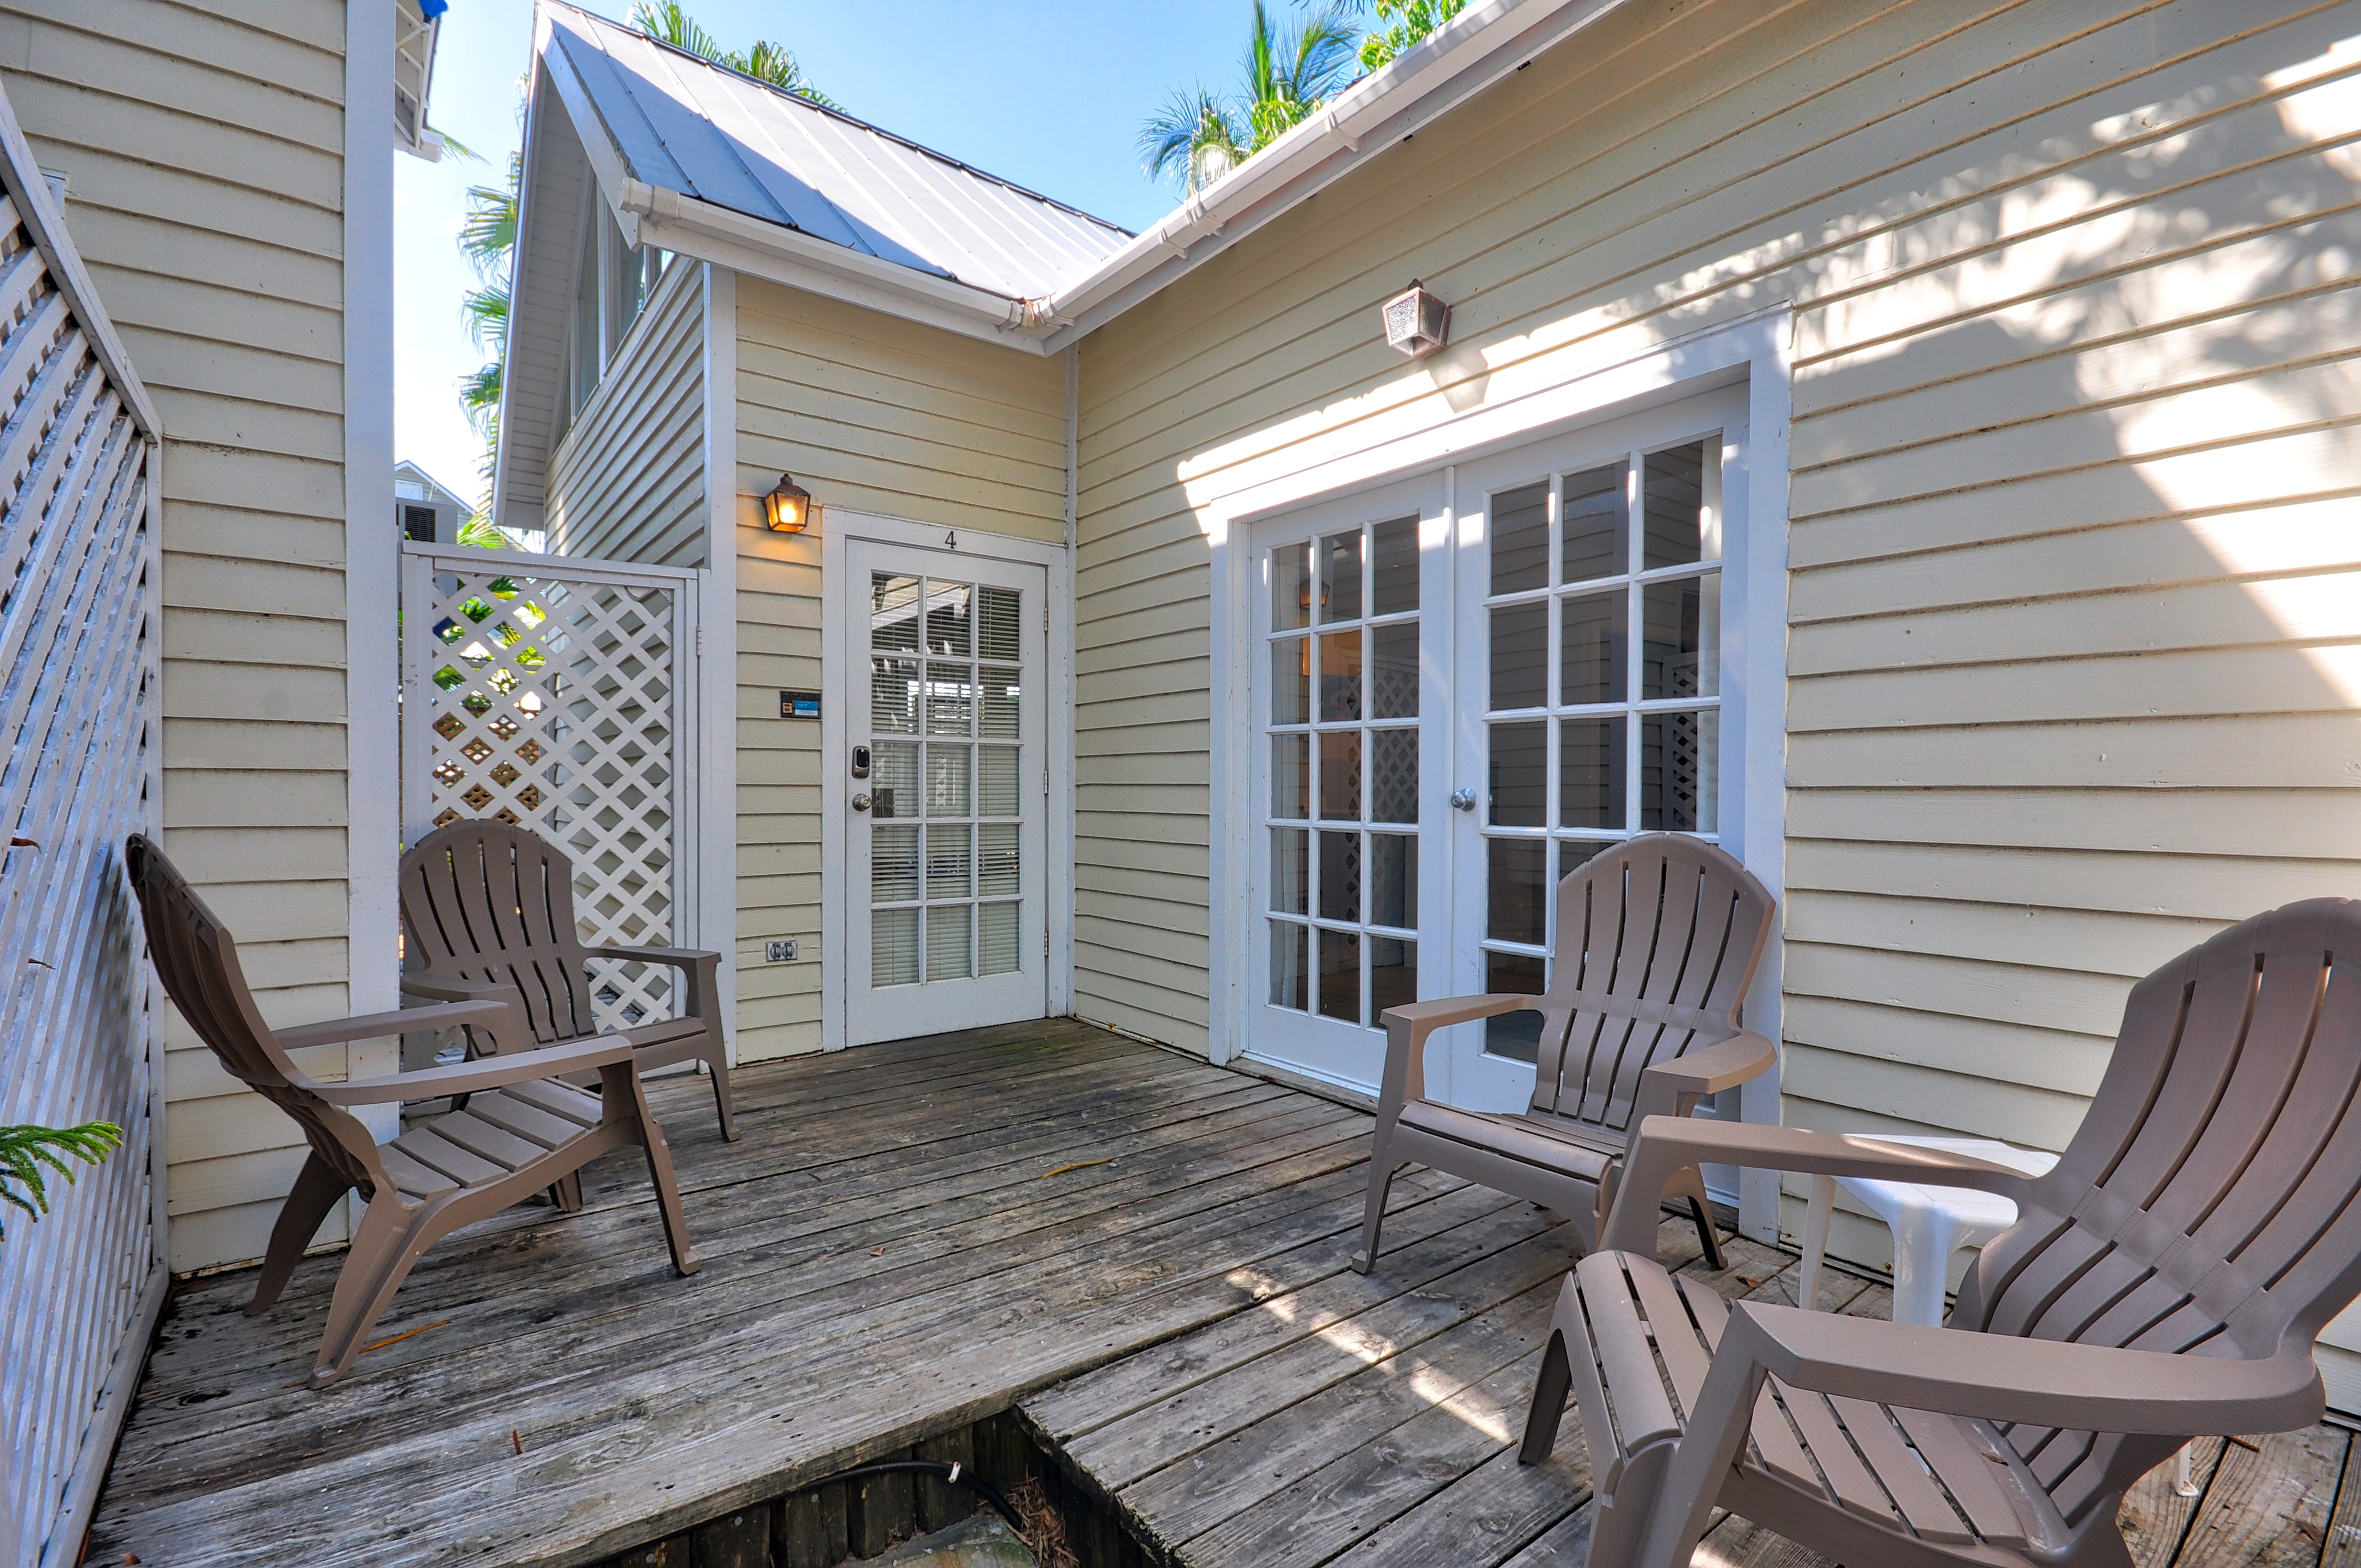 usd rental place full displayed rates lake vacation for management city rent bedrooms traverse view cottages availability bathrooms cottage in bass property